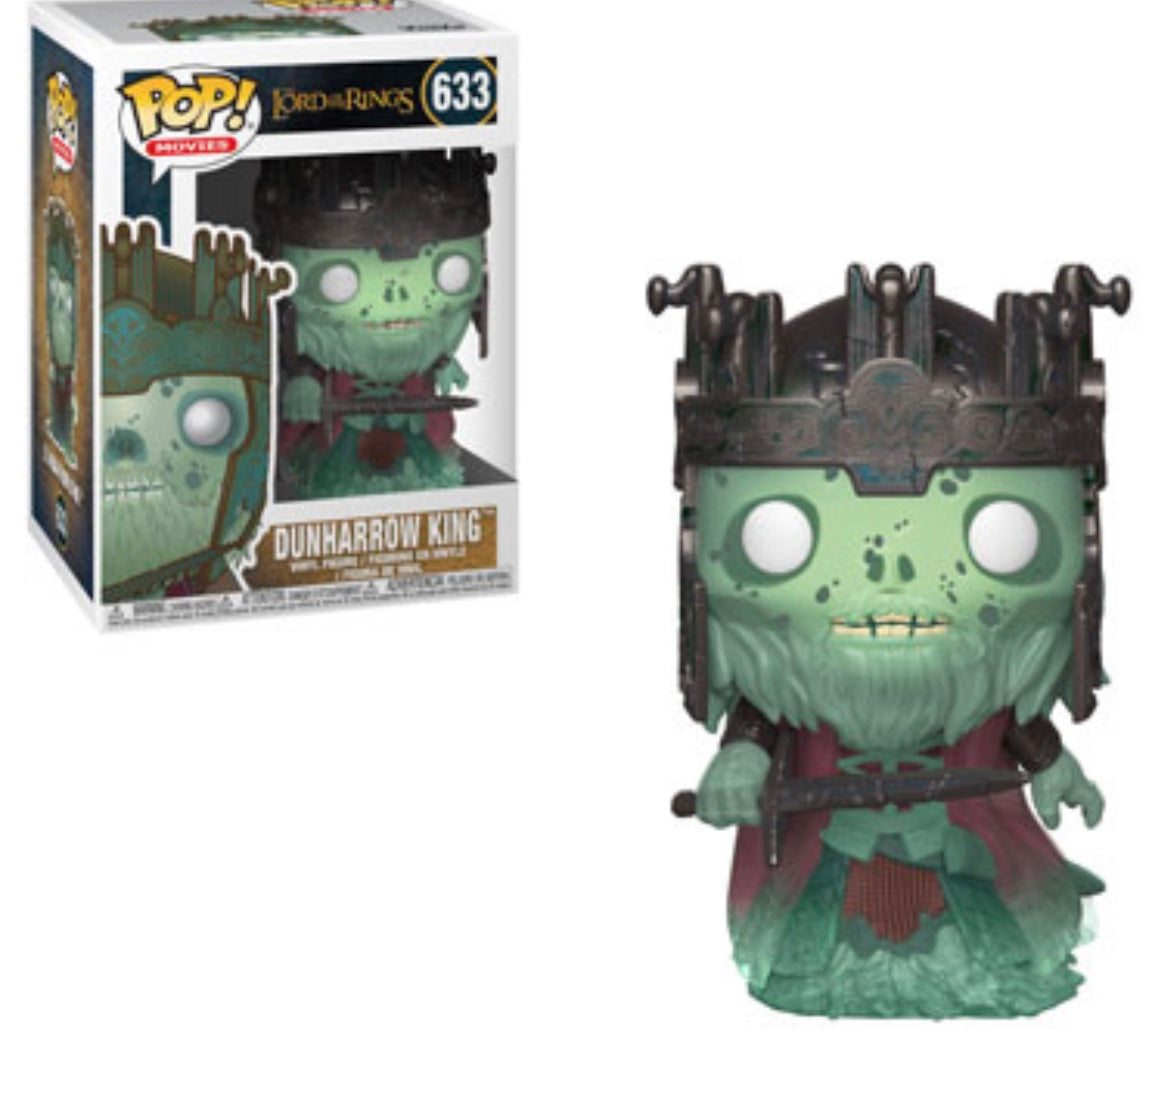 (Preorder) Pop! Movies: Lord of the Rings DunHarrow King